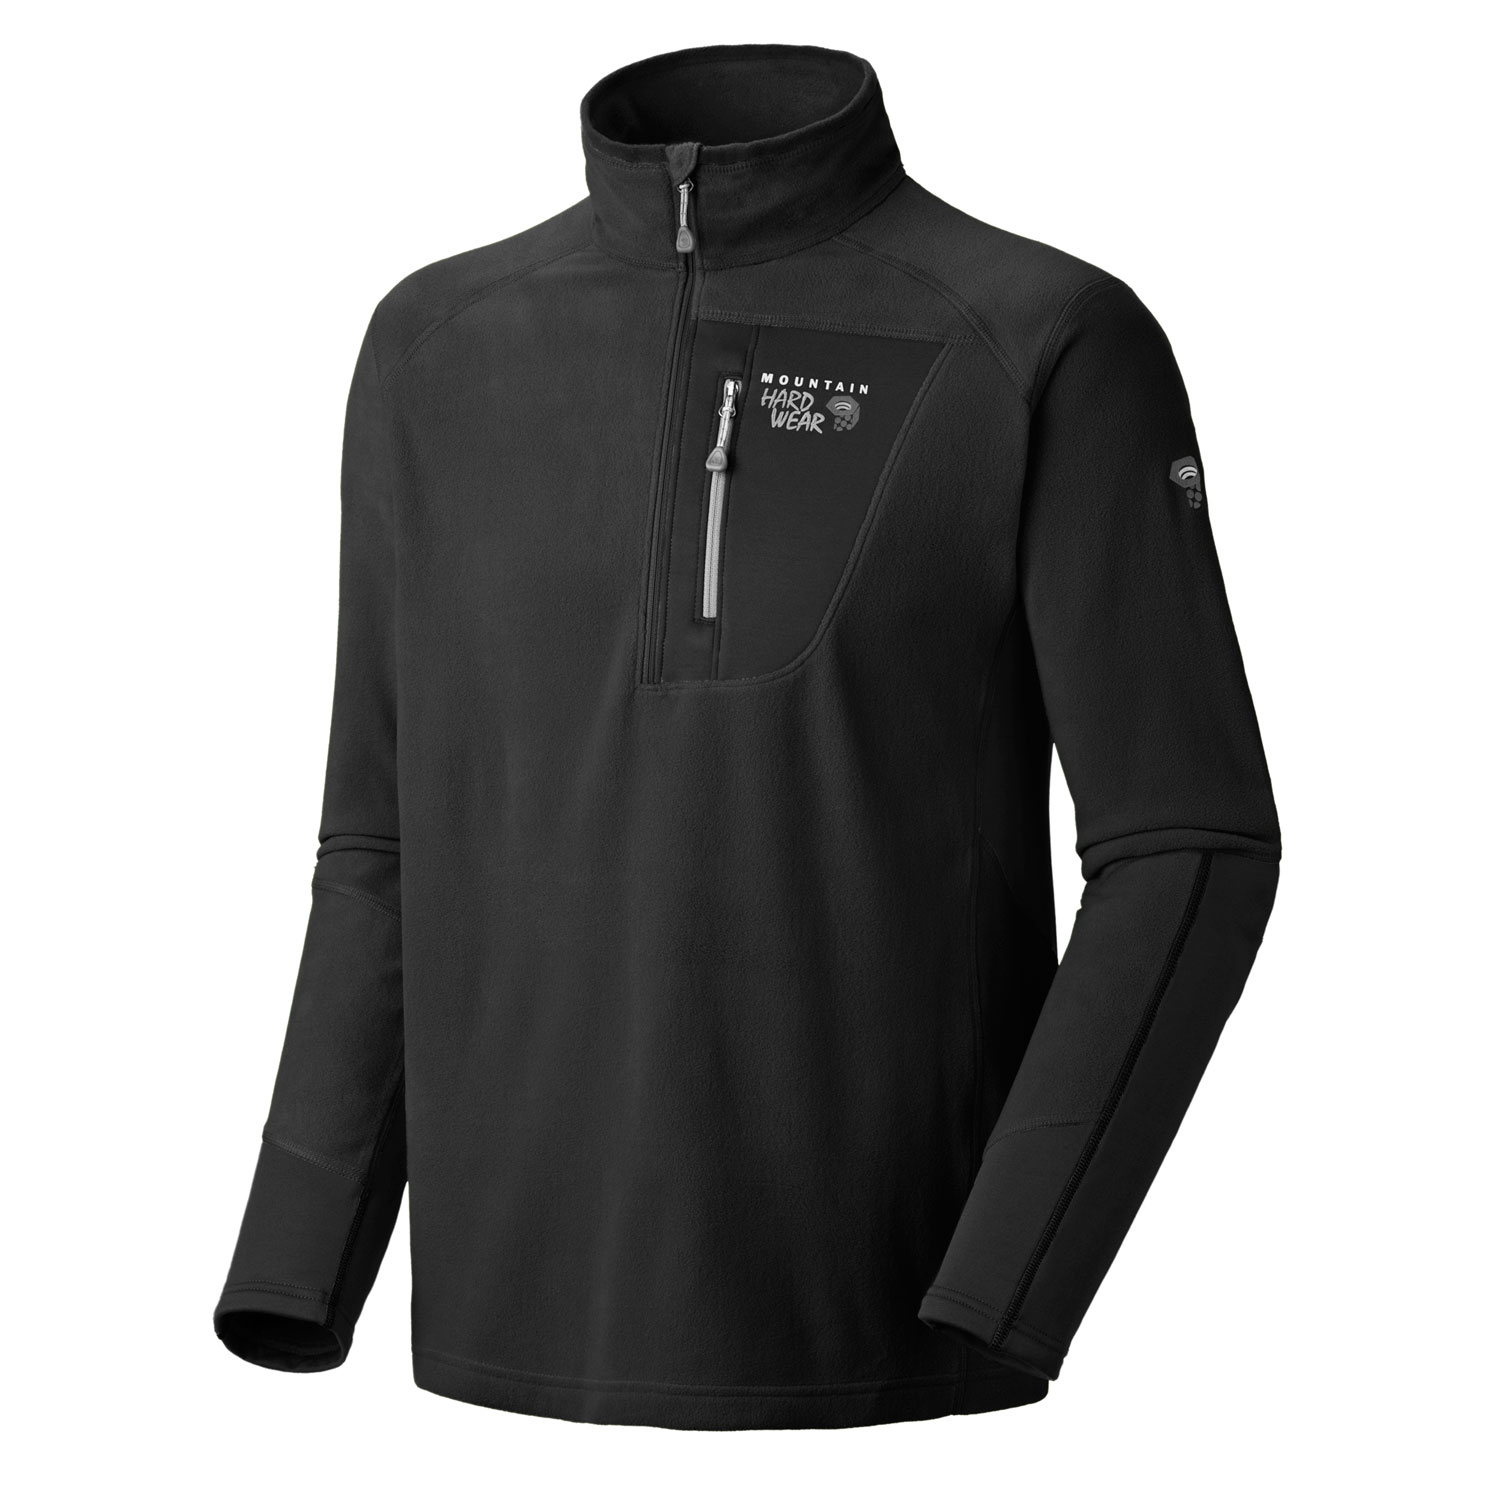 "Key Features of the Mountain Hardwear Microstretch Zip T Fleece Hoodie: Avg. weight: 11oz; 304g Center back length: 28.5"" Fabric: body: Velous Micro Fleece (100% polyester) panel: Technostretch (93% polyester/7% Elastane) New fabric Flat-lock construction for comfort Zip chest stash pocket High-cut collar with 12"" zip to vent heat - $65.95"